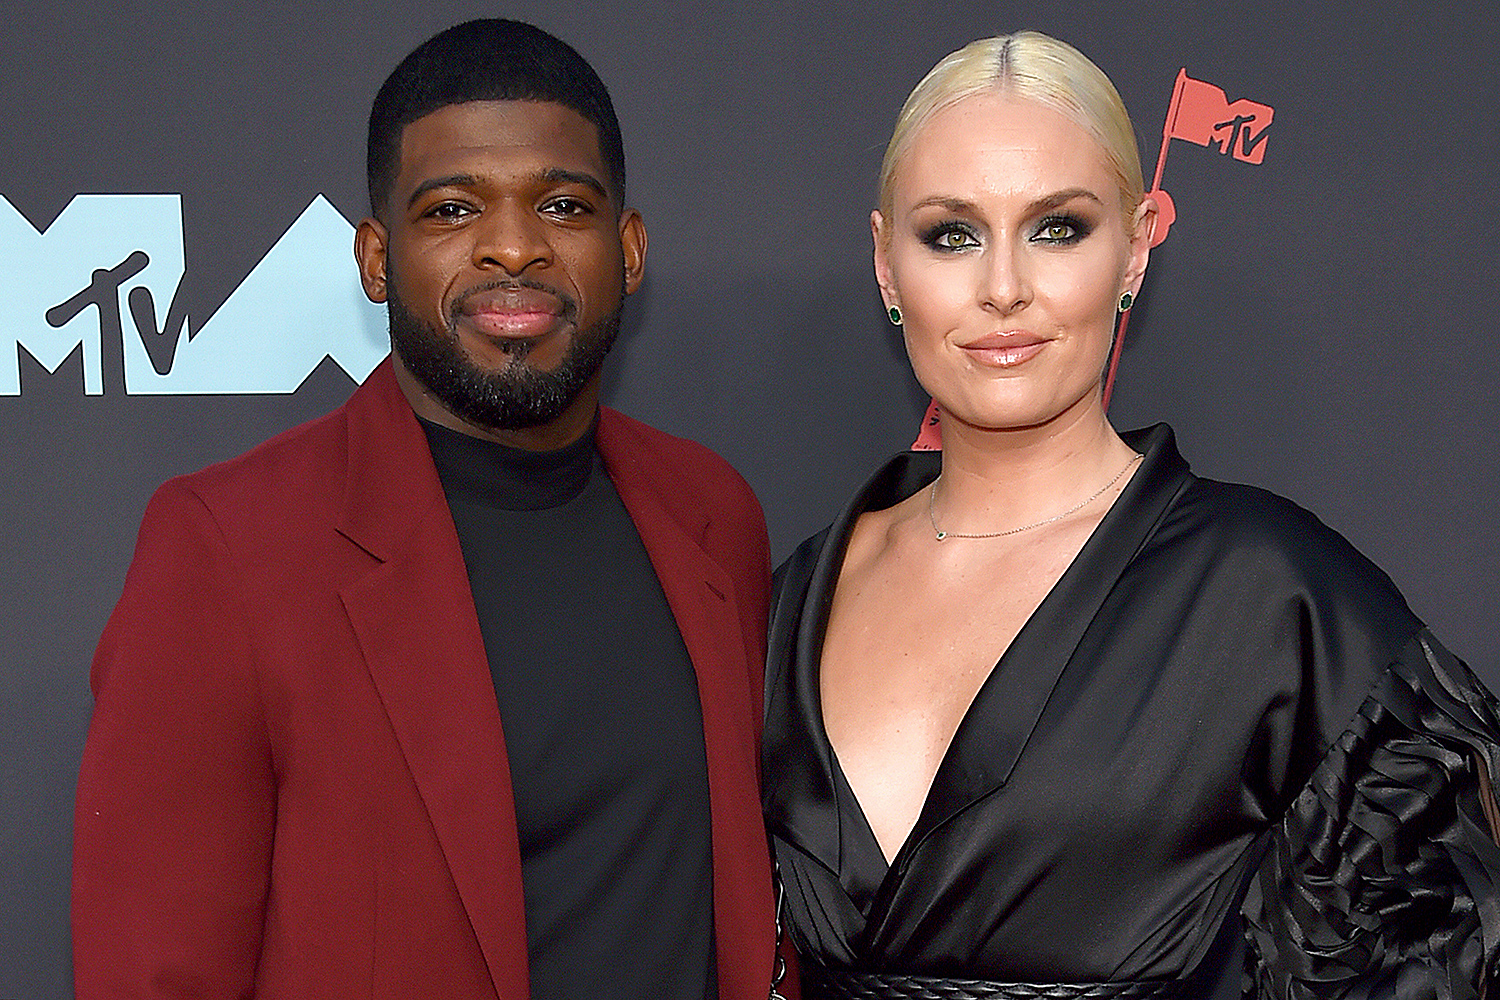 """The former Olympian announced the split on Instagram on Dec. 29.                             """"Over the past 3 years PK and I have had some incredible times together. He is a kind, good man, and someone I respect a great deal,"""" Vonn wrote, sharing a photo of the former couple.                             """"However, after much consideration we have decided to move forward separately,"""" she continued. """"We will always remain friends and love each other immensely. We ask that you please respect our privacy during this time.""""                             The Olympic gold medalist, who retired from professional skiing in 2019 after a storied career that saw a record number of World Cup wins, began dating Subban, a defenseman on the New Jersey Devils, in early 2018. PEOPLE confirmed their engagement in August 2019."""